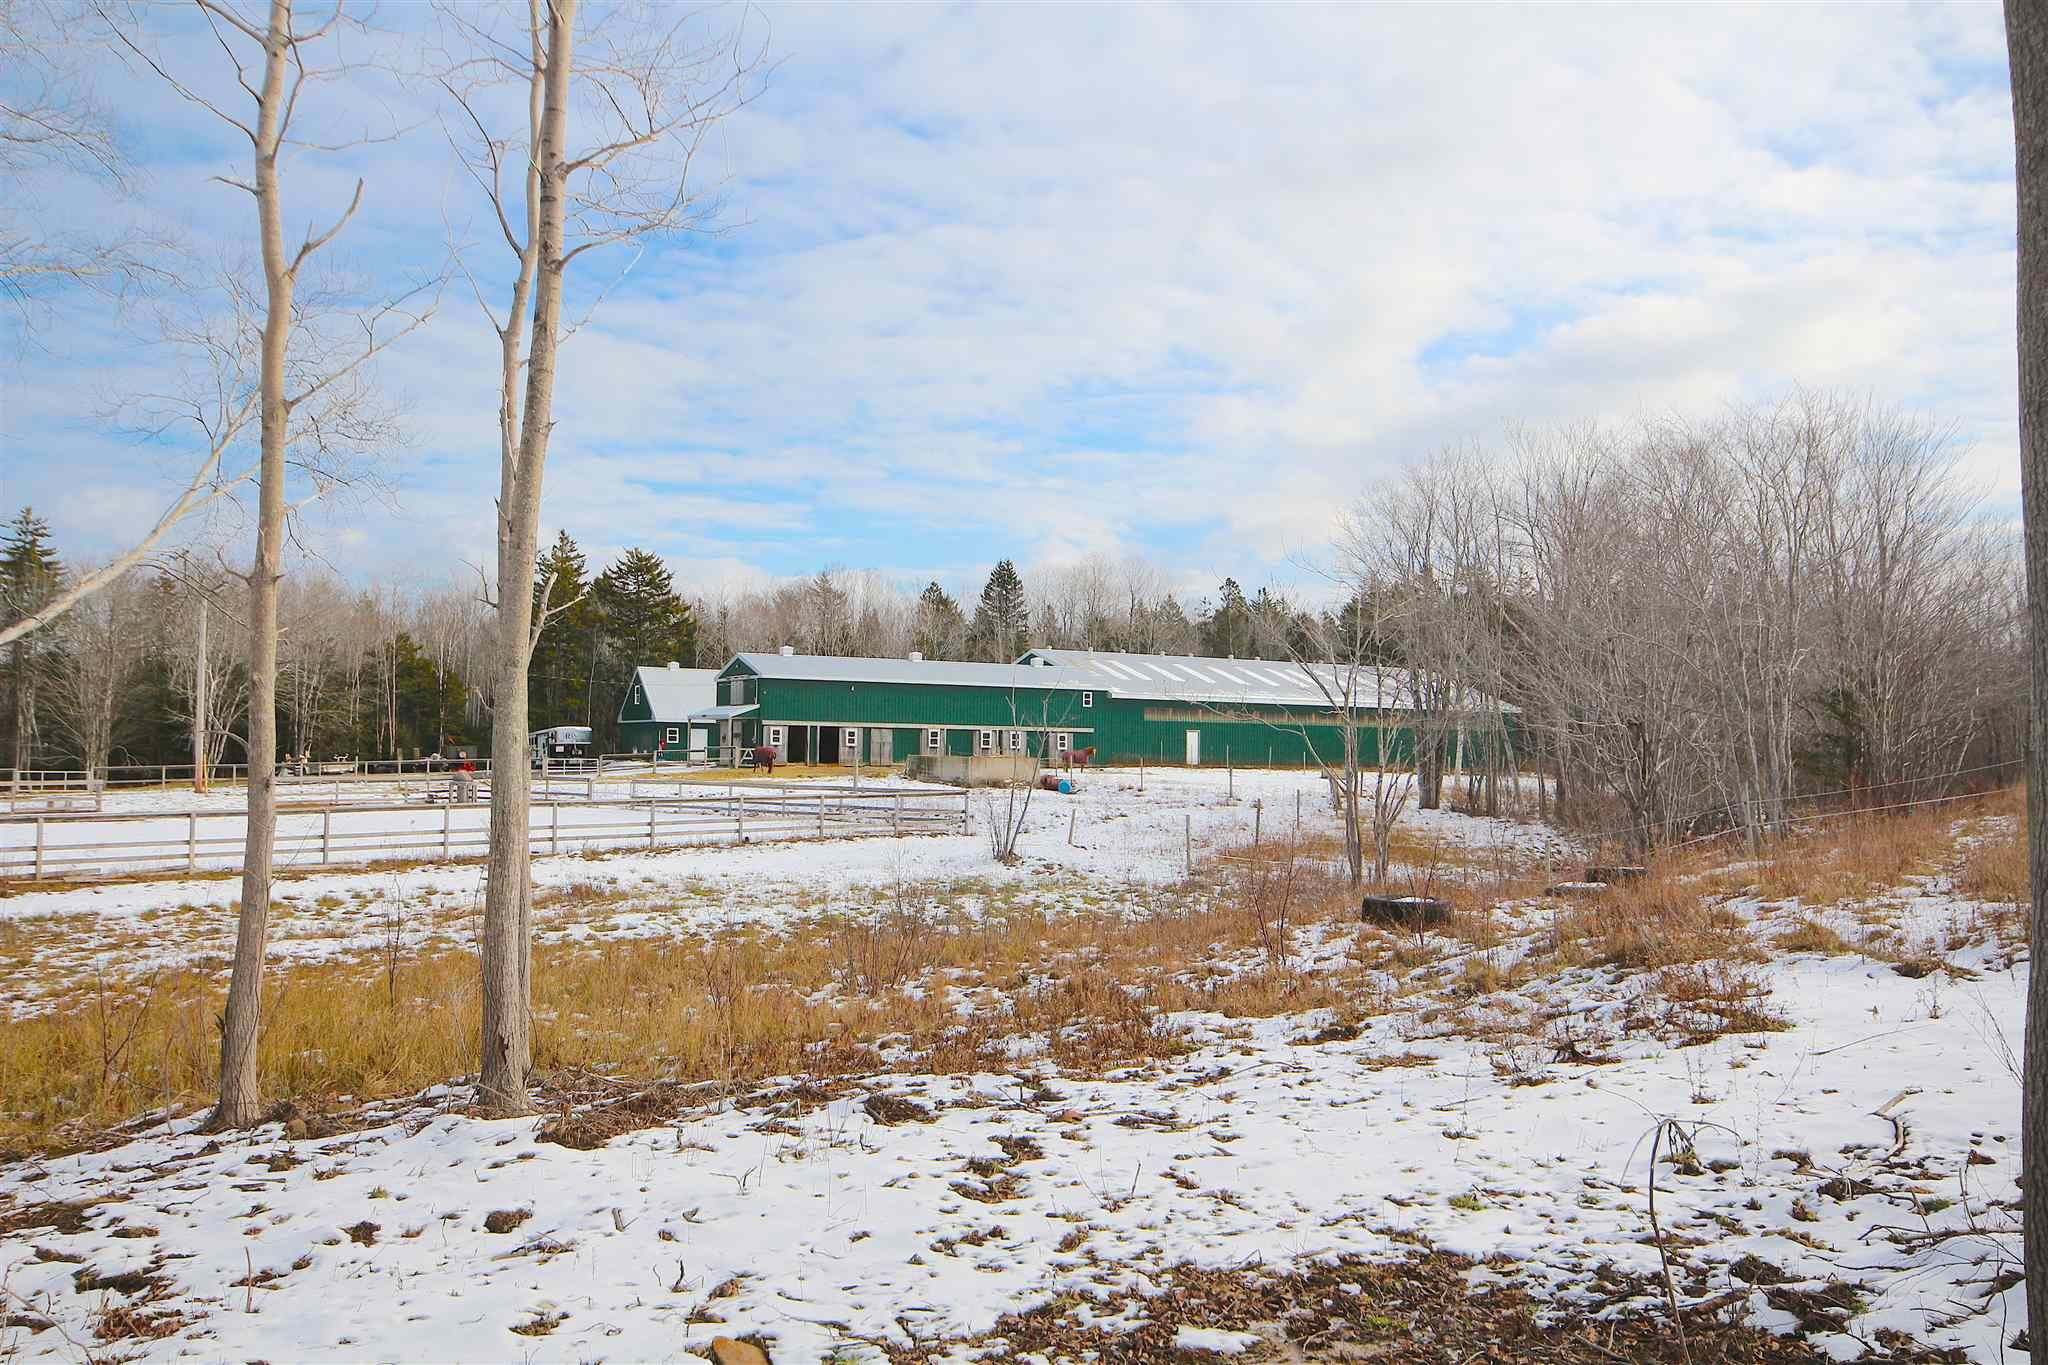 Main Photo: 12018 Highway 215 in Sea Brook: 401-Digby County Residential for sale (Annapolis Valley)  : MLS®# 202100750